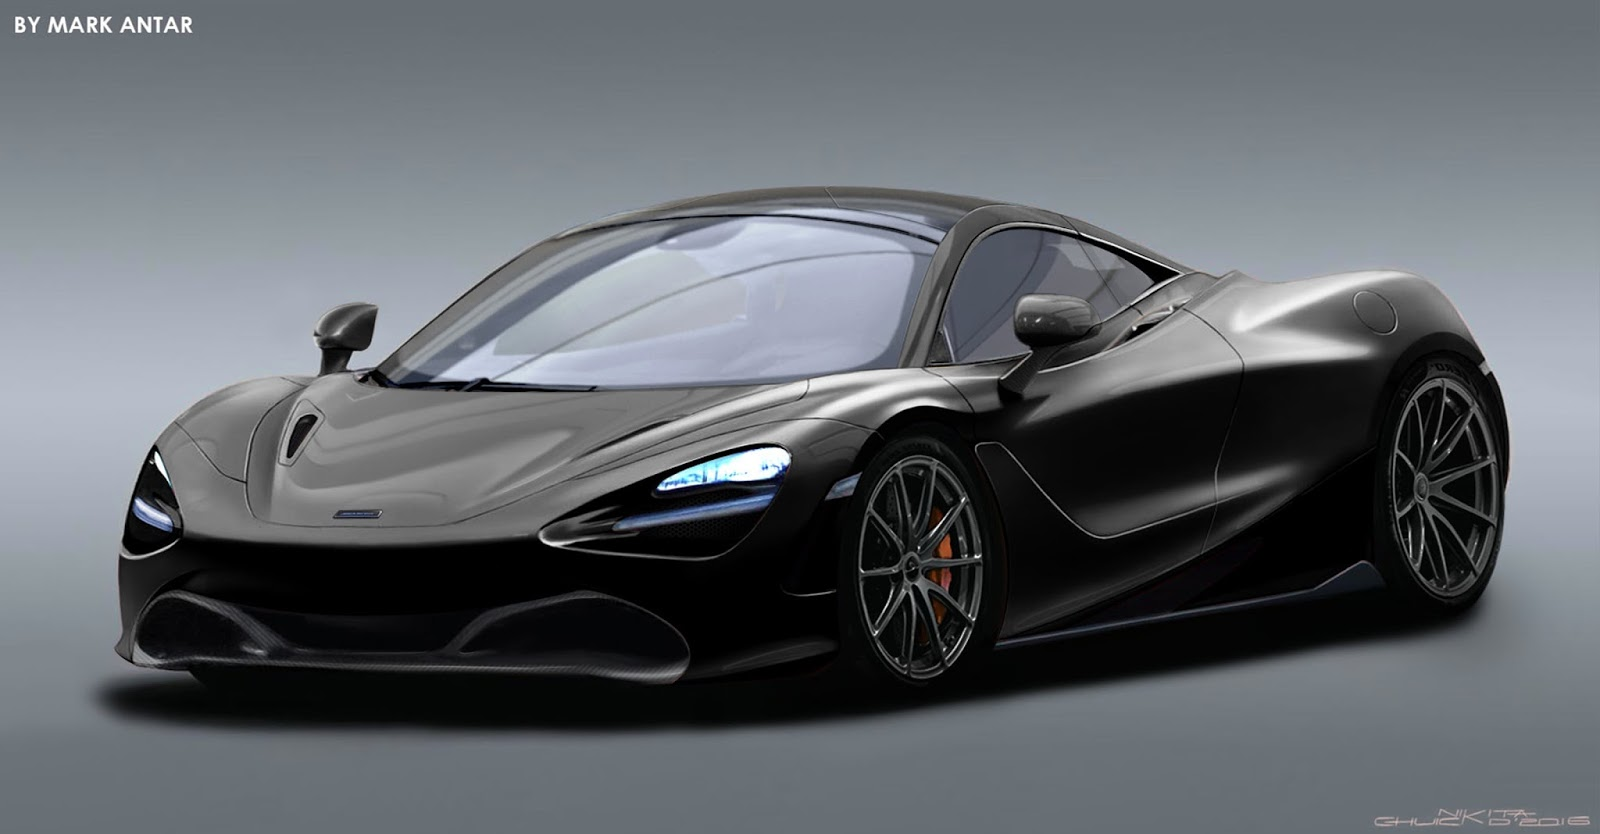 If The Mclaren 720s Looks Like This One Can Assume It Is A